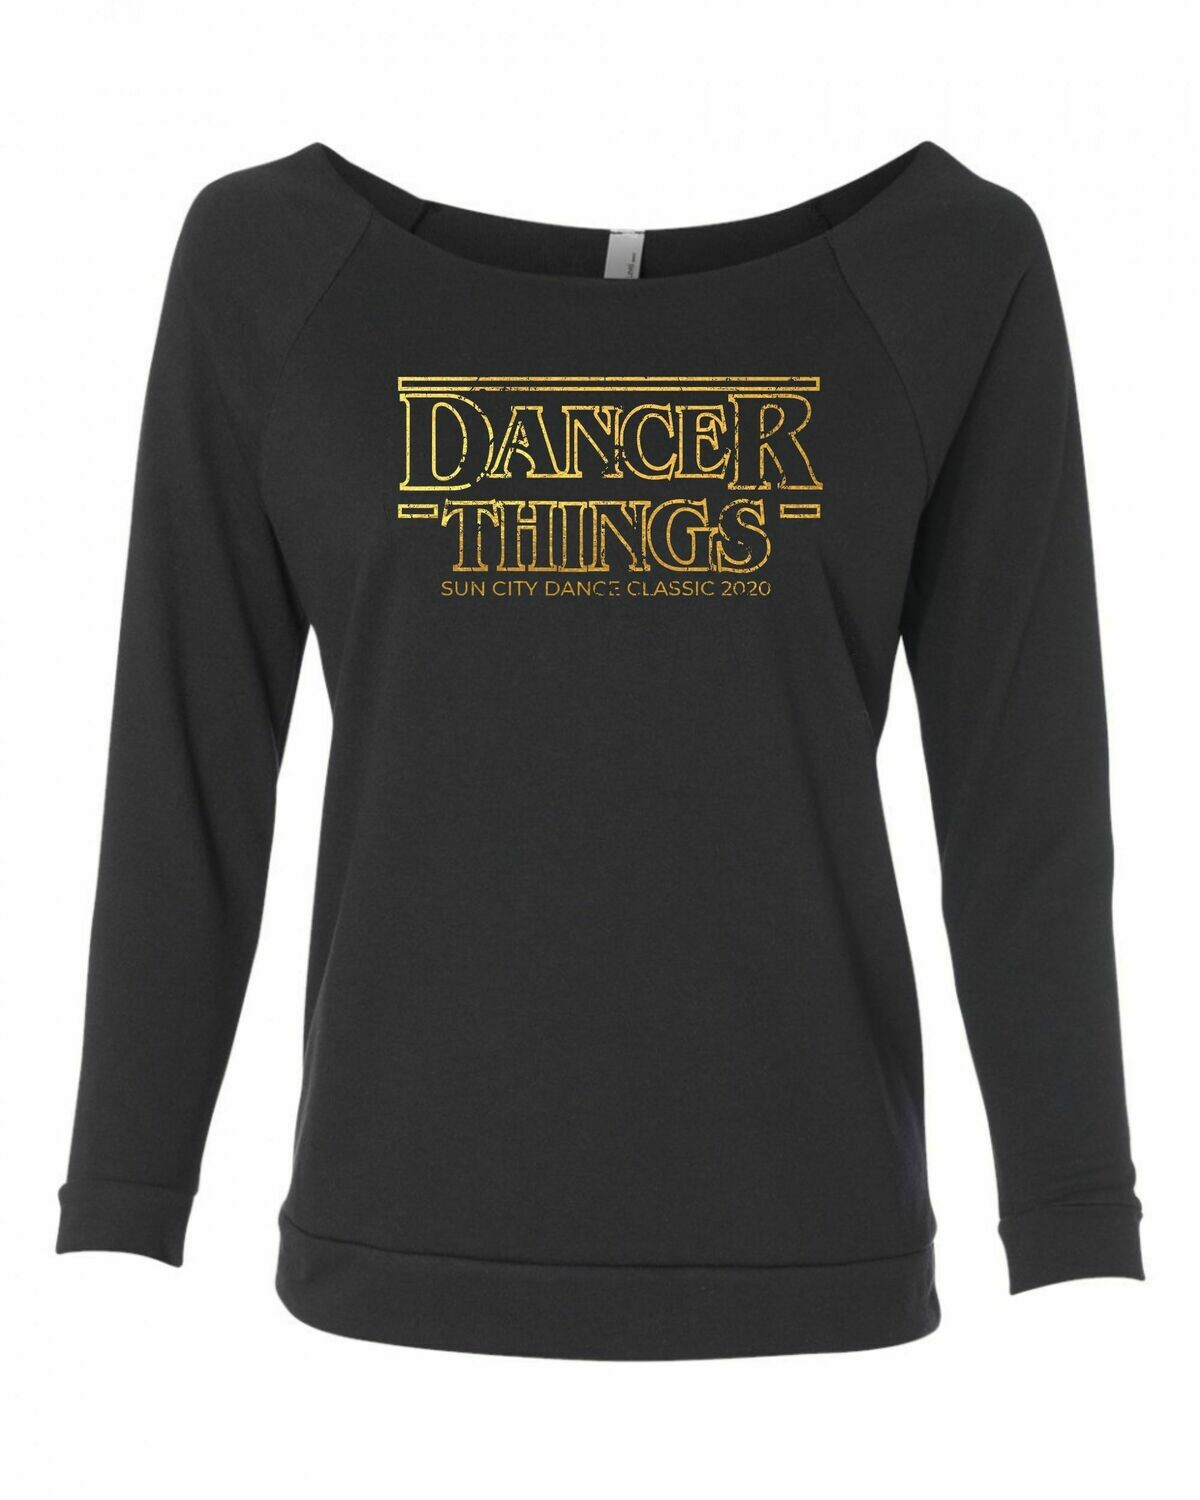 Dancer Things Longsleeve